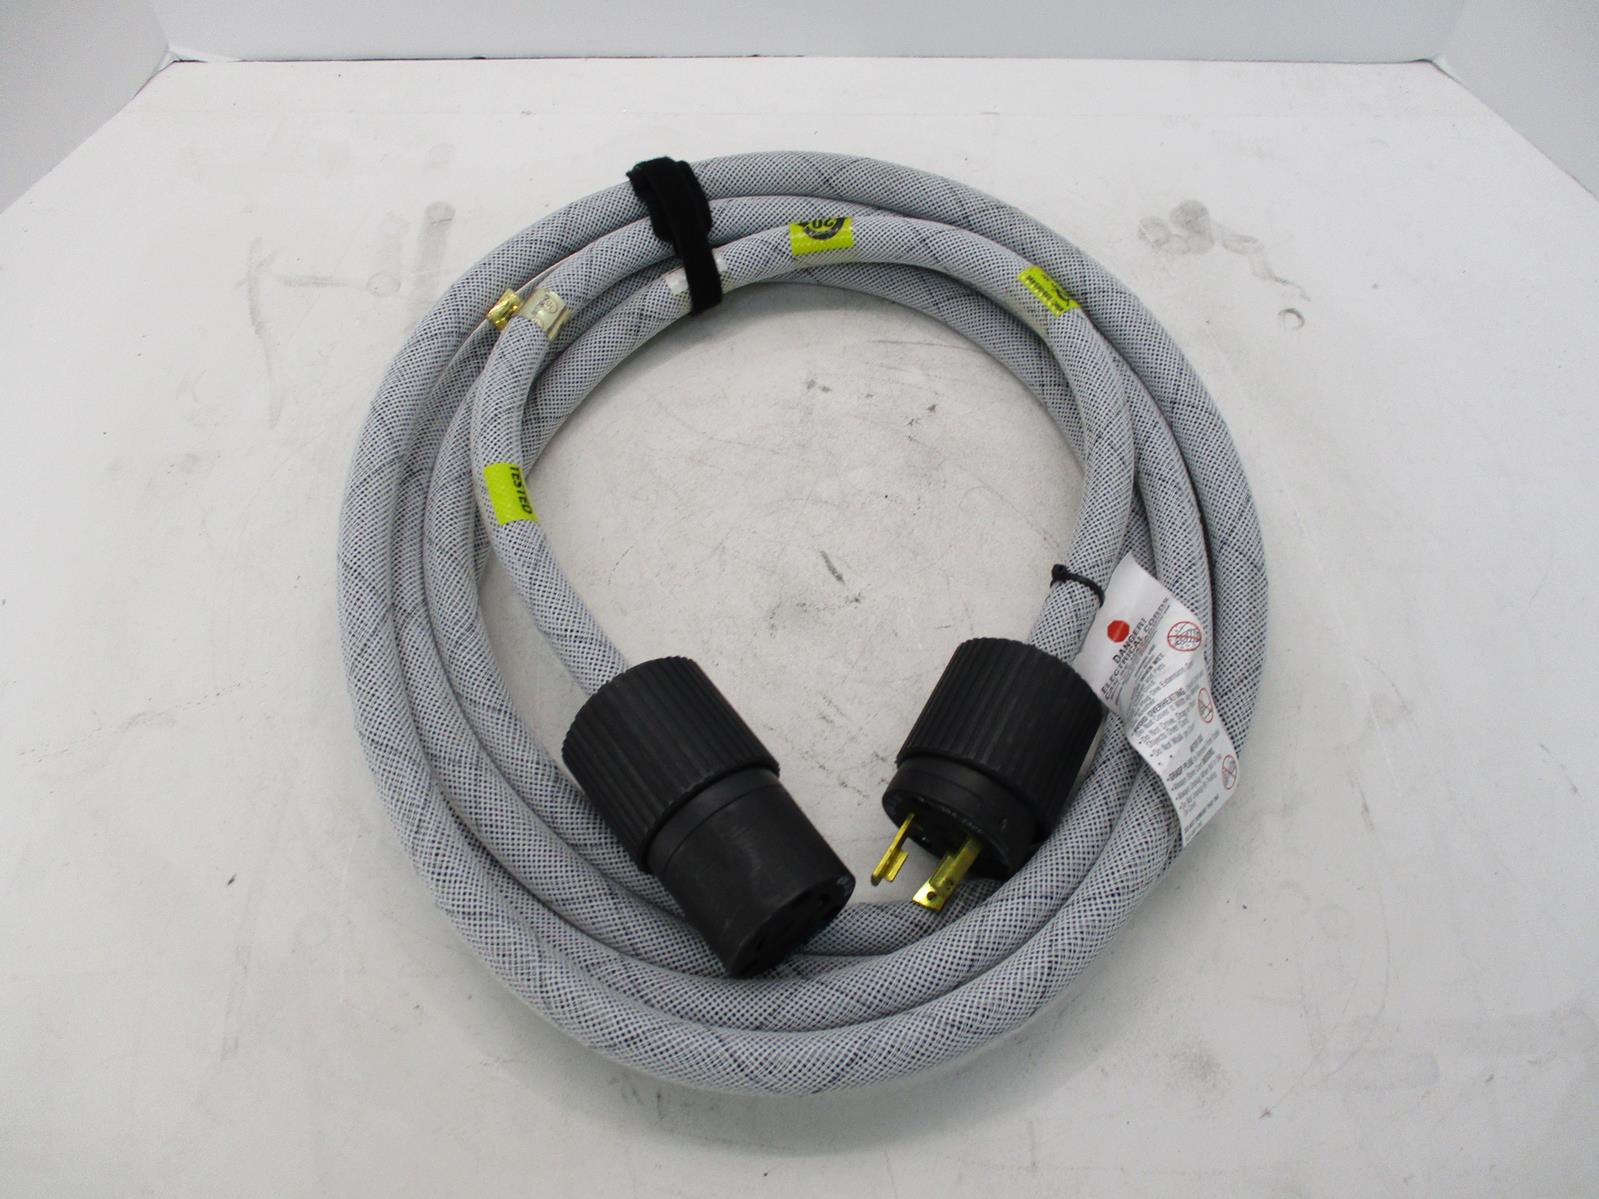 Emc Hubbell 038 003 898 Rev A02 Nema L6 30 Power Cable 250v 30a Ebay Wiring